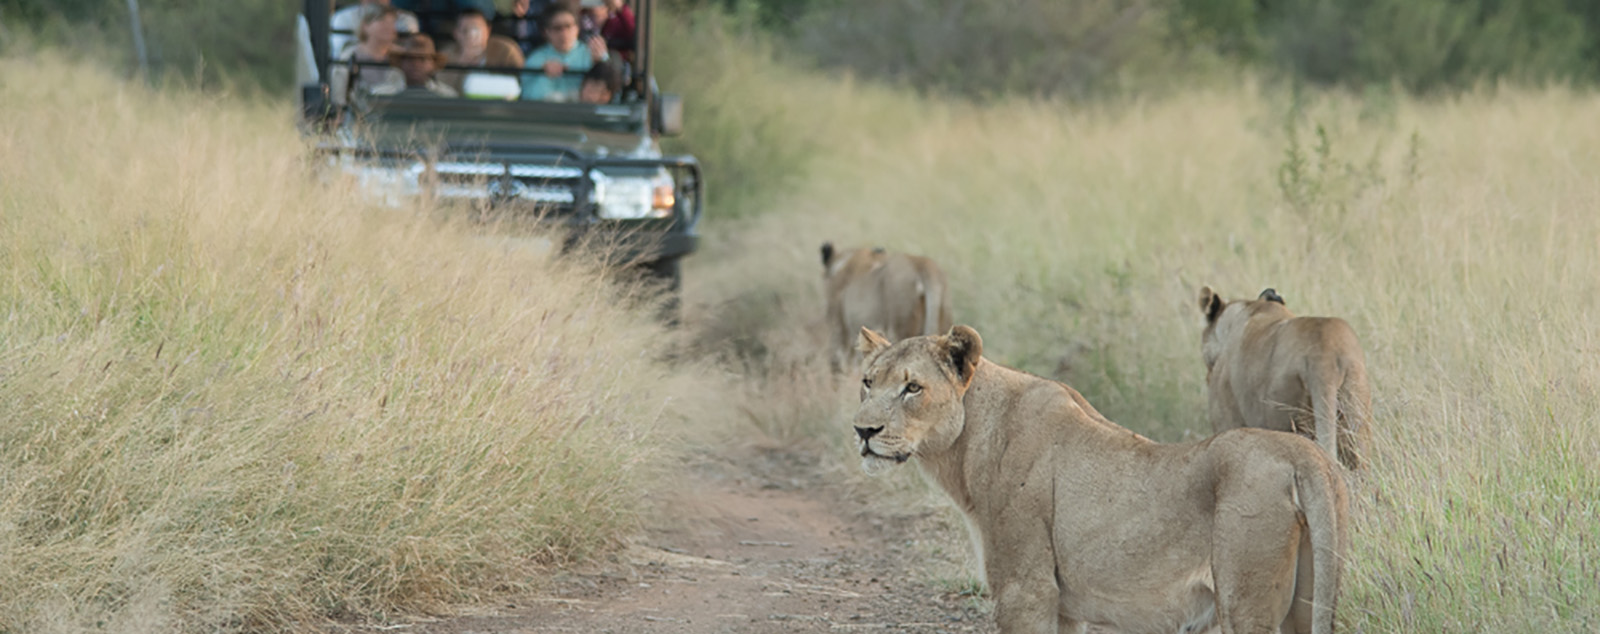 Three lions patrolling their territory with a jeep in the background full of poeple watching the lion